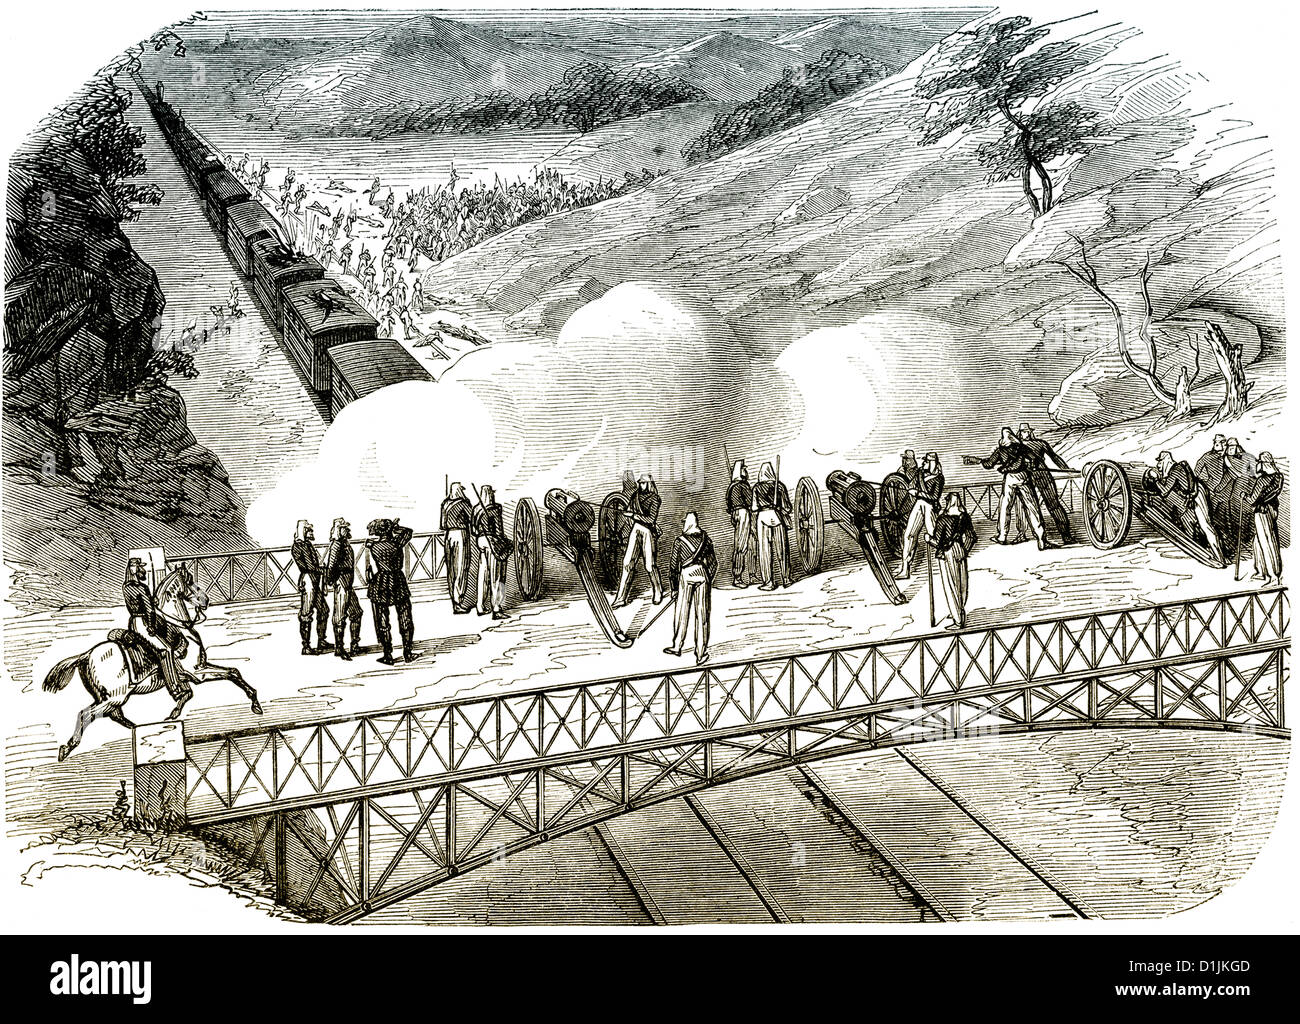 train being attacked during the American Civil War, 1861- 1865 - Stock Image